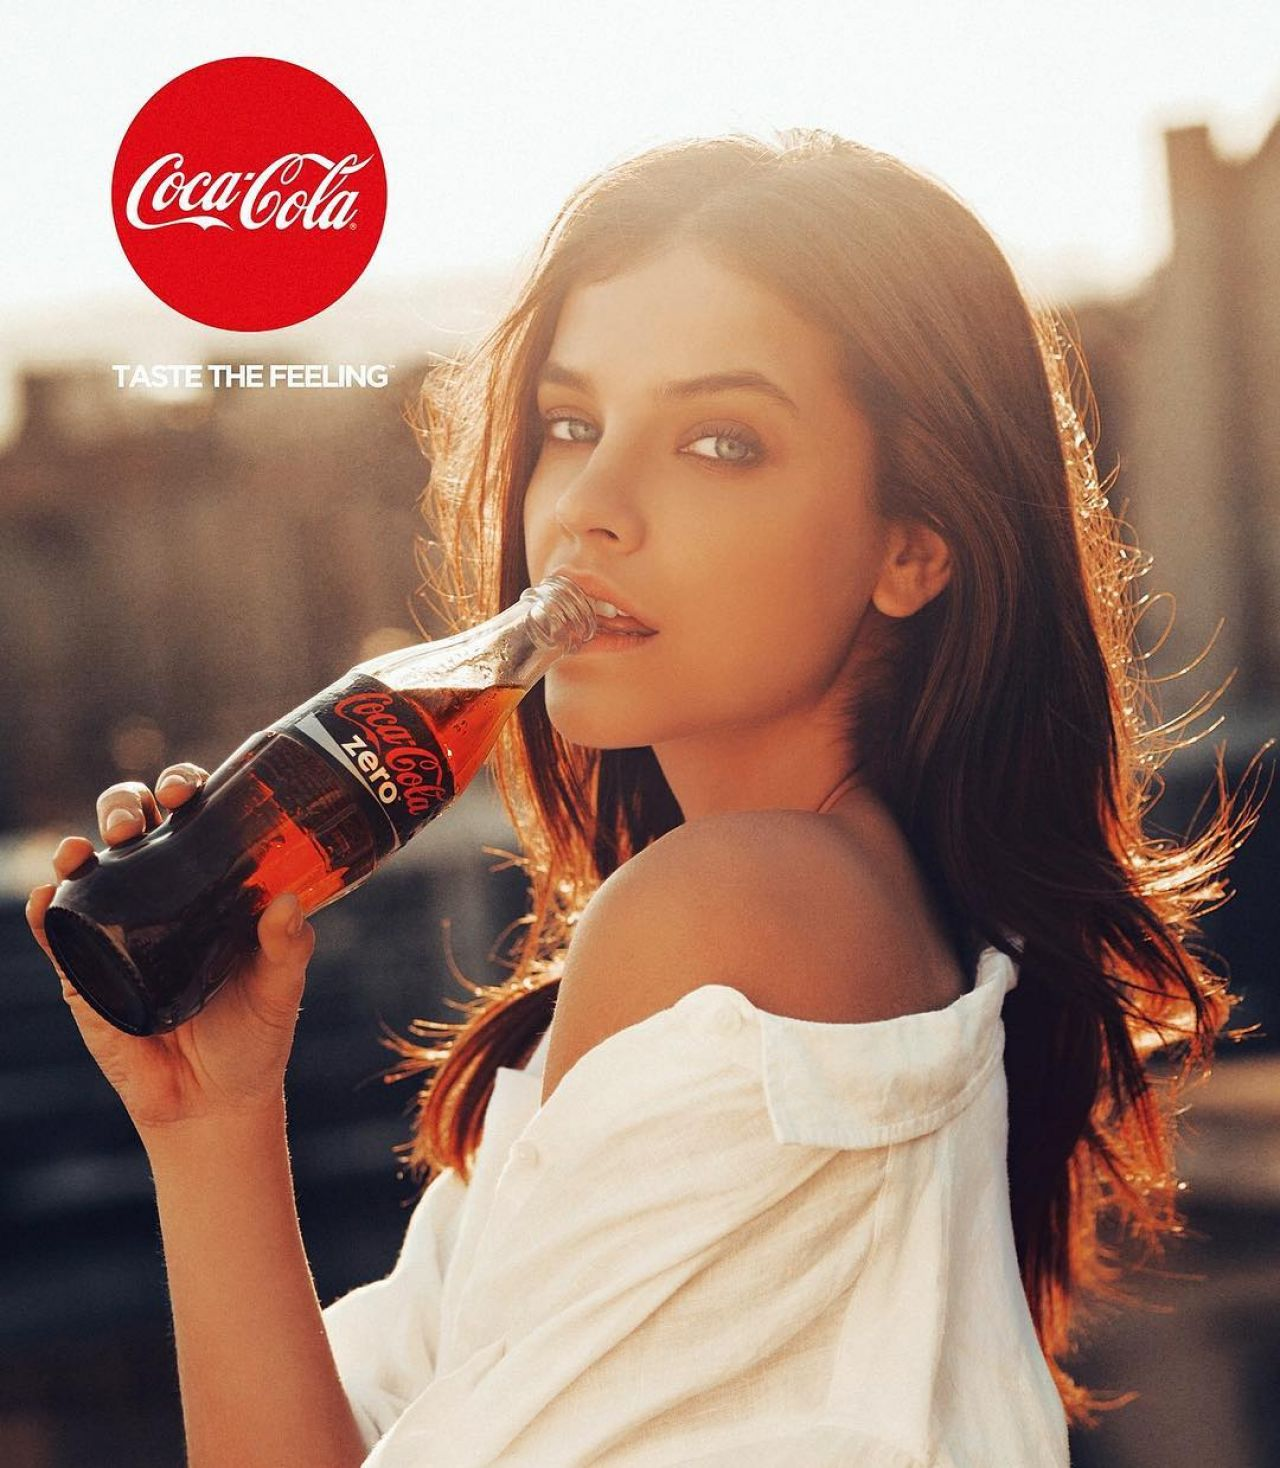 coca cola ad campaign Coca-cola's new advertising campaign positions itself as part of the solution to north america's obesity epidemic, but nutrition experts call it a distraction from the food and beverage industry's contributions to the problem.